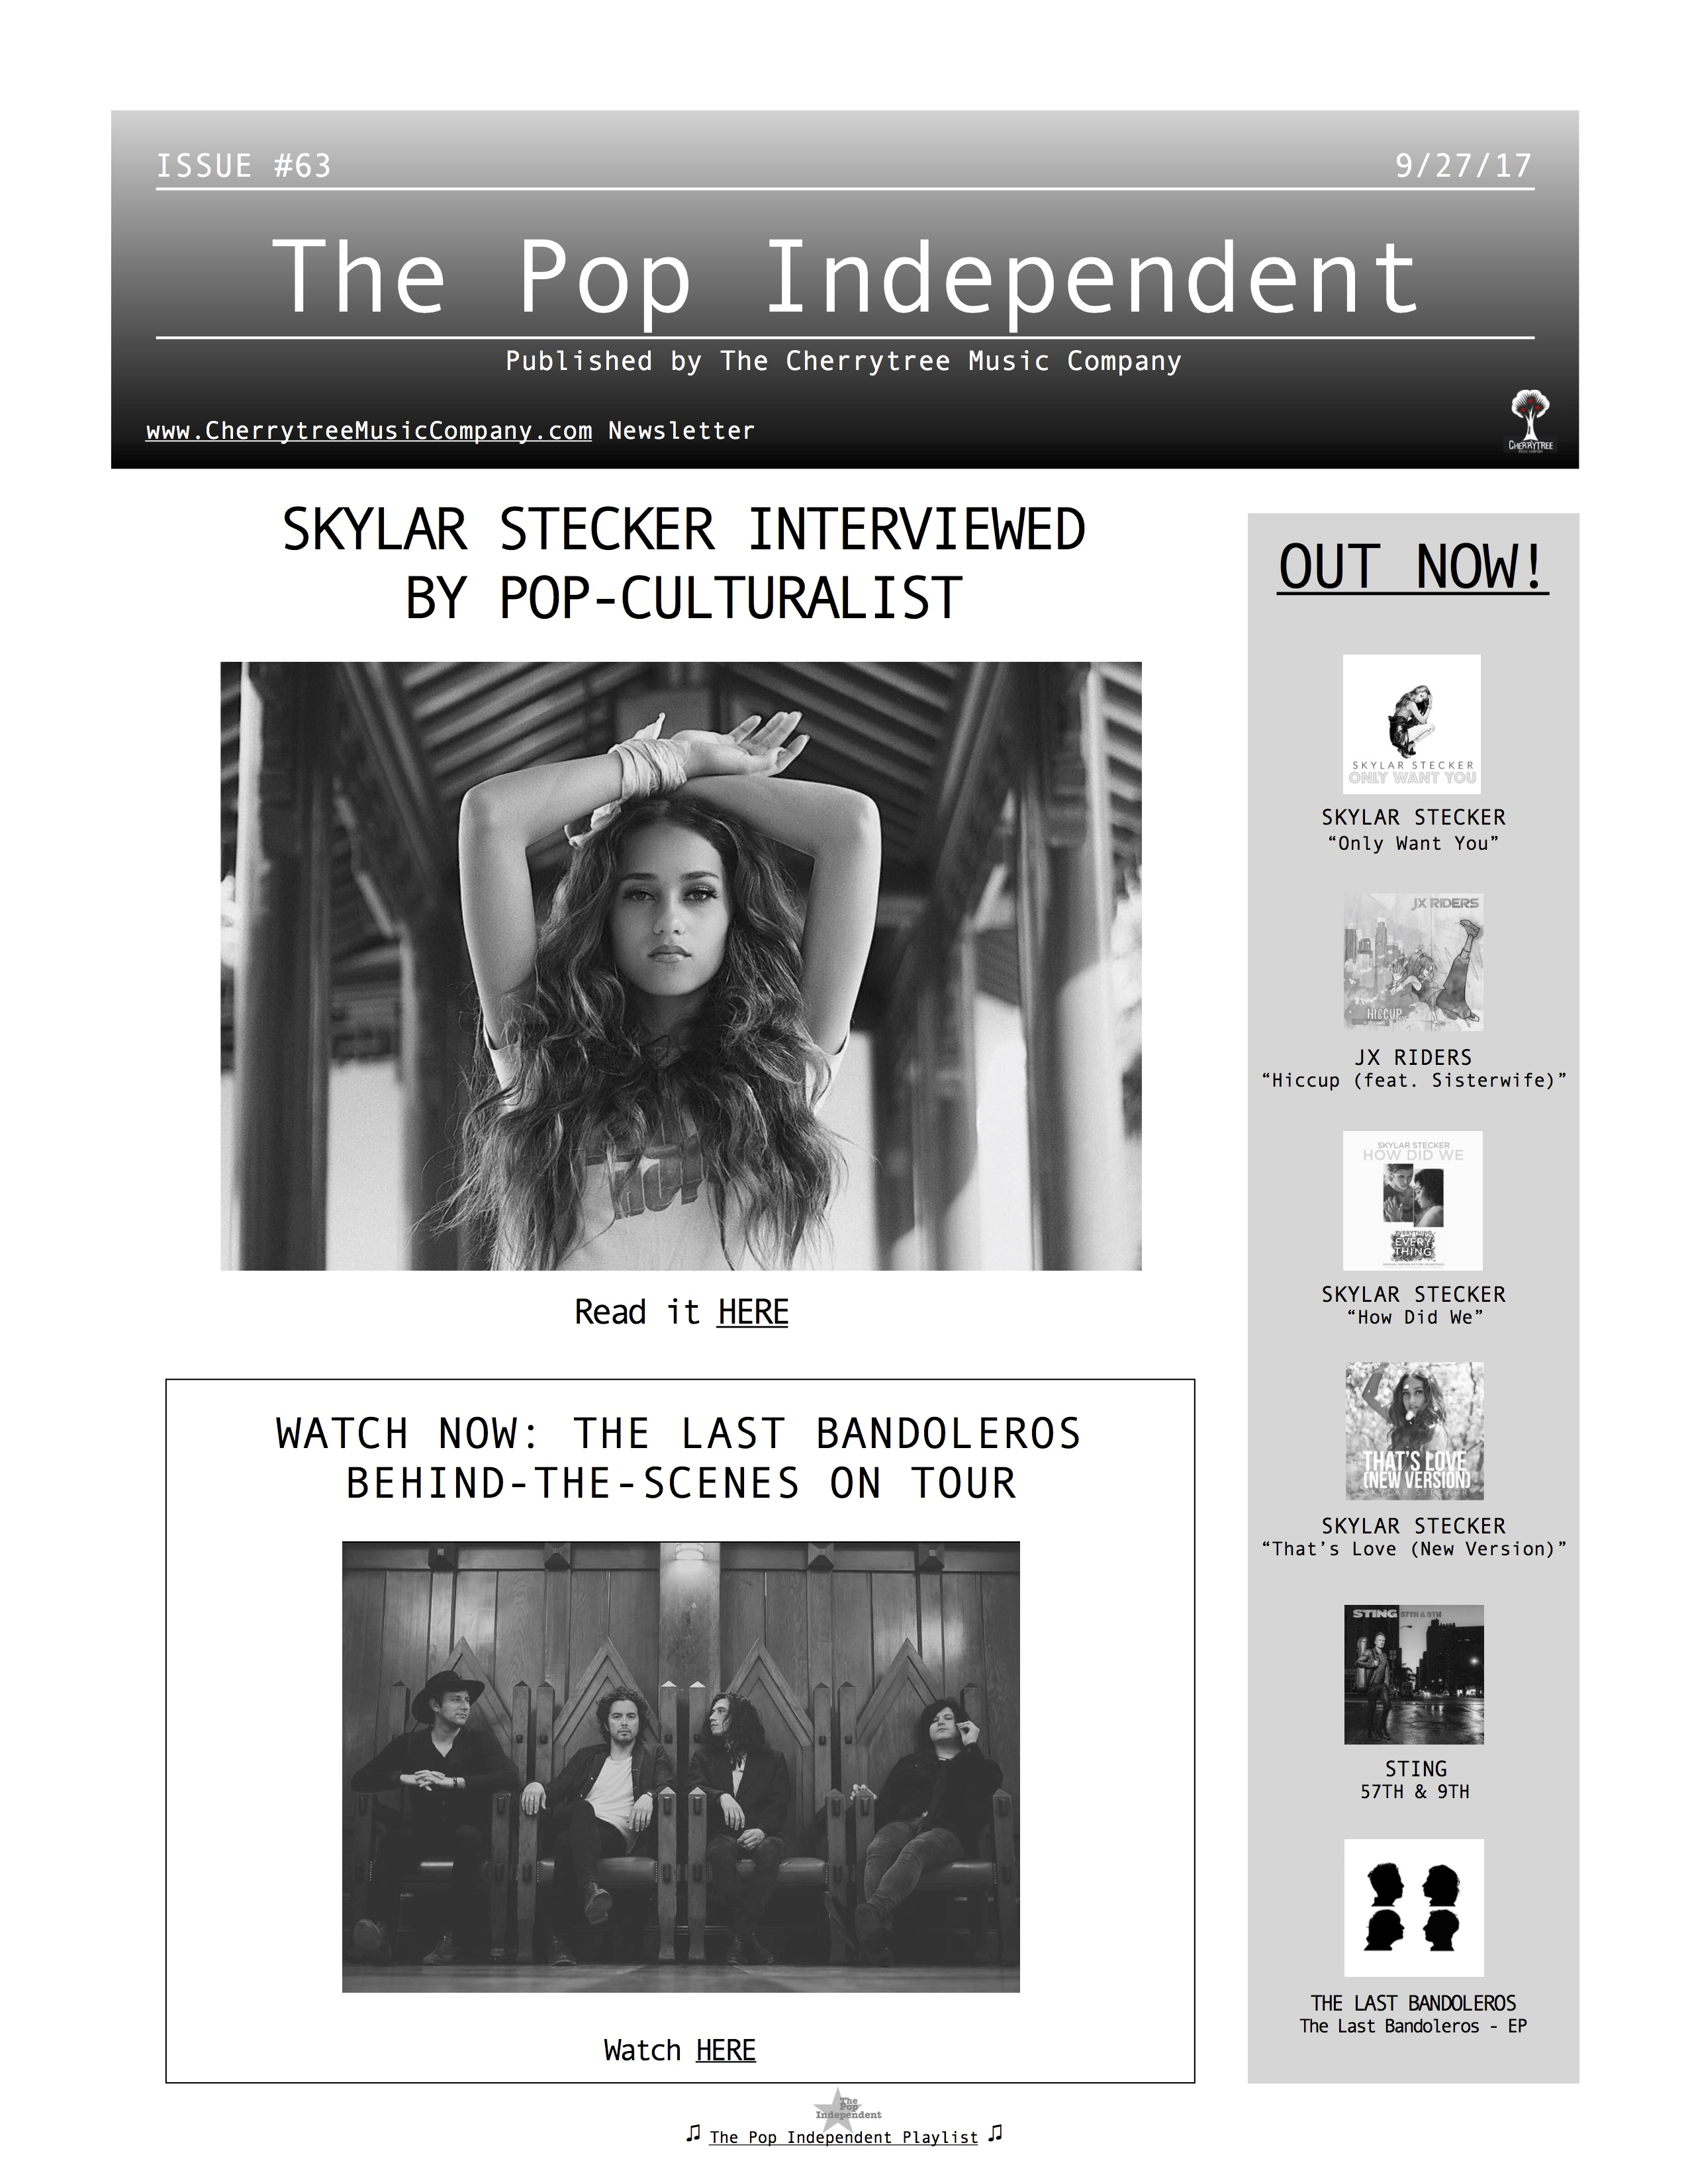 The Pop Independent, issue 63